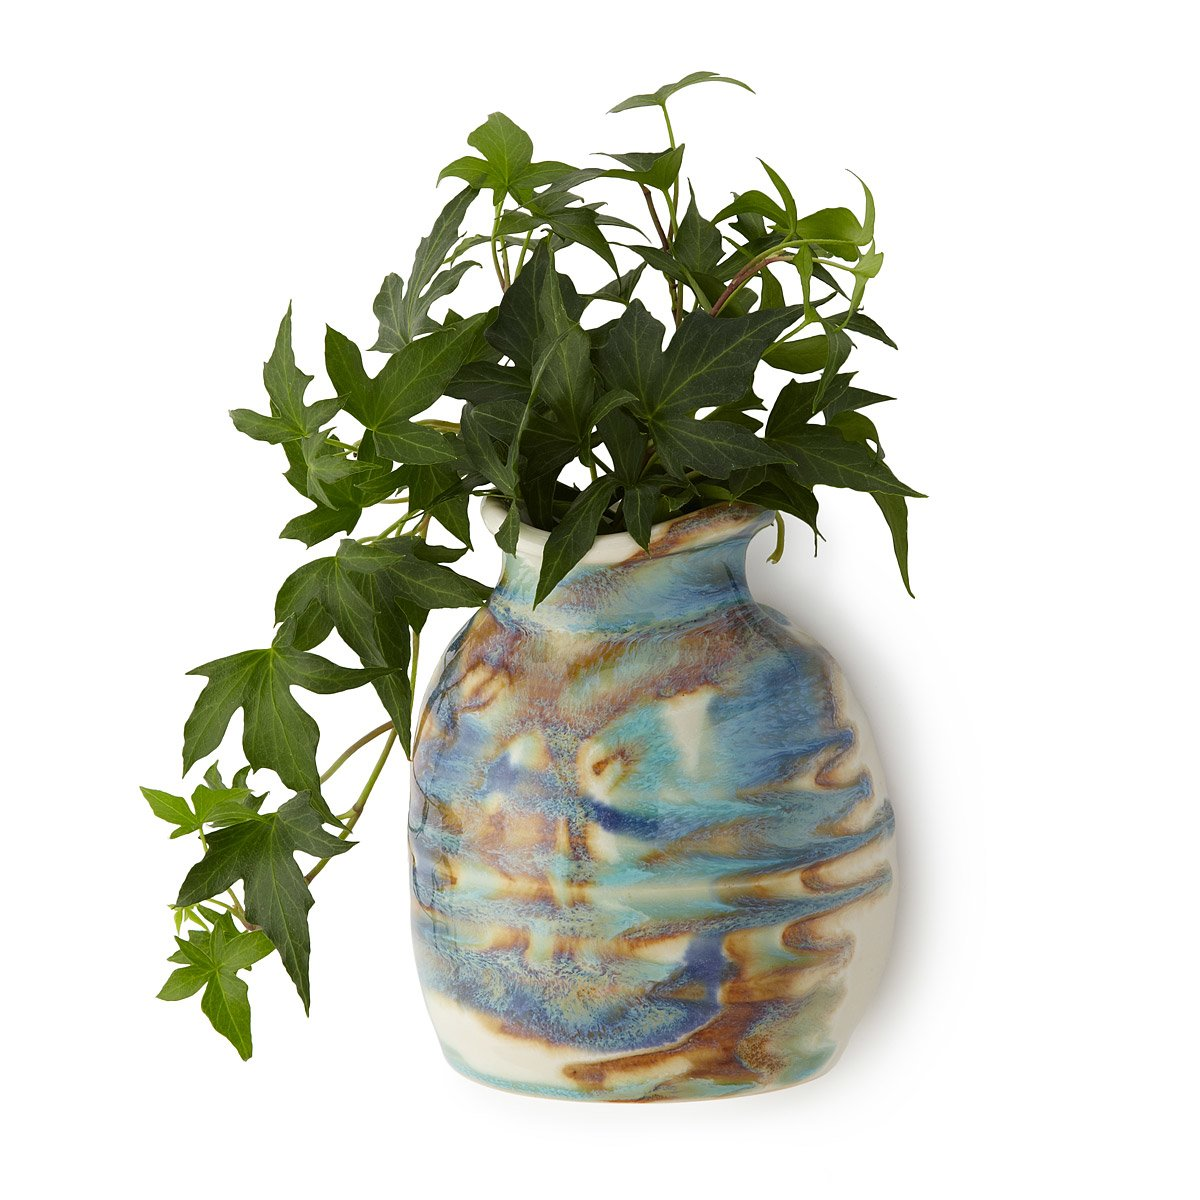 Wall Hanging Flower Pots tricolor wall pot | hanging flower pot, hanging plants, ceramic